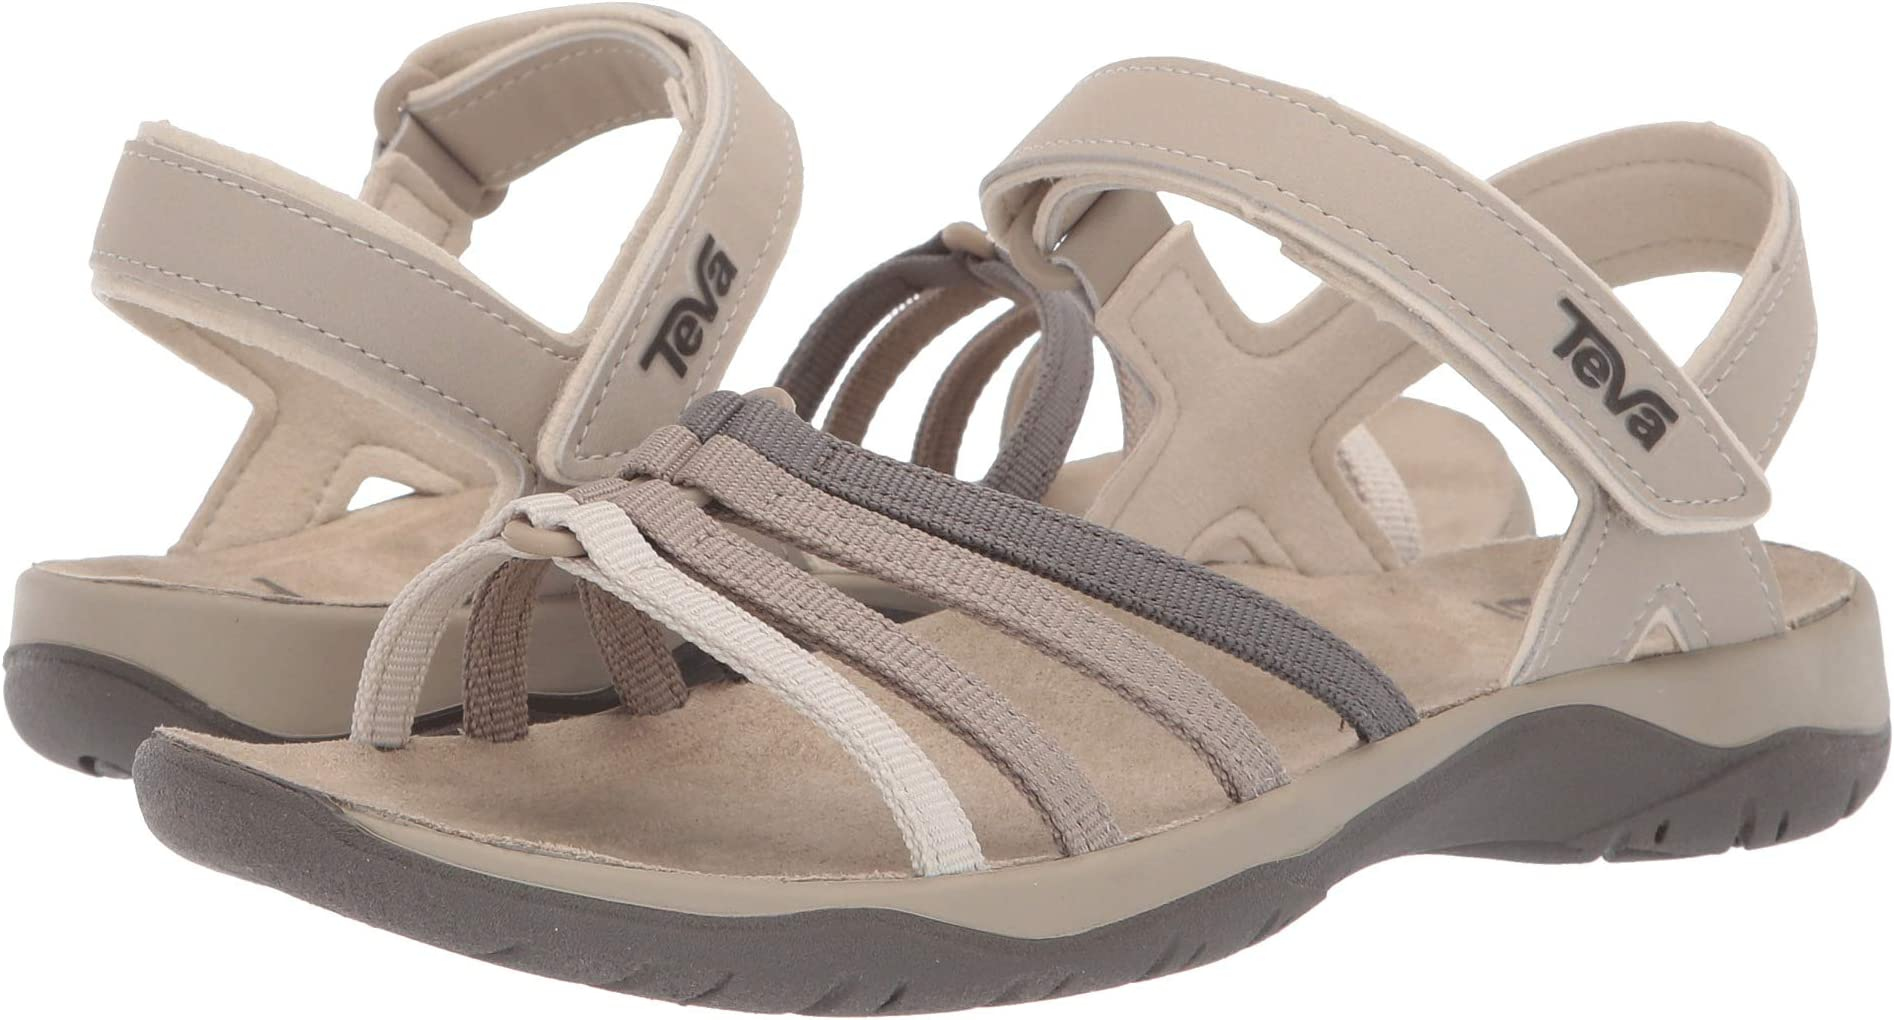 8e6415b930929e Women s. TC-3-Teva-Sandals-2019-2-26. Sandals